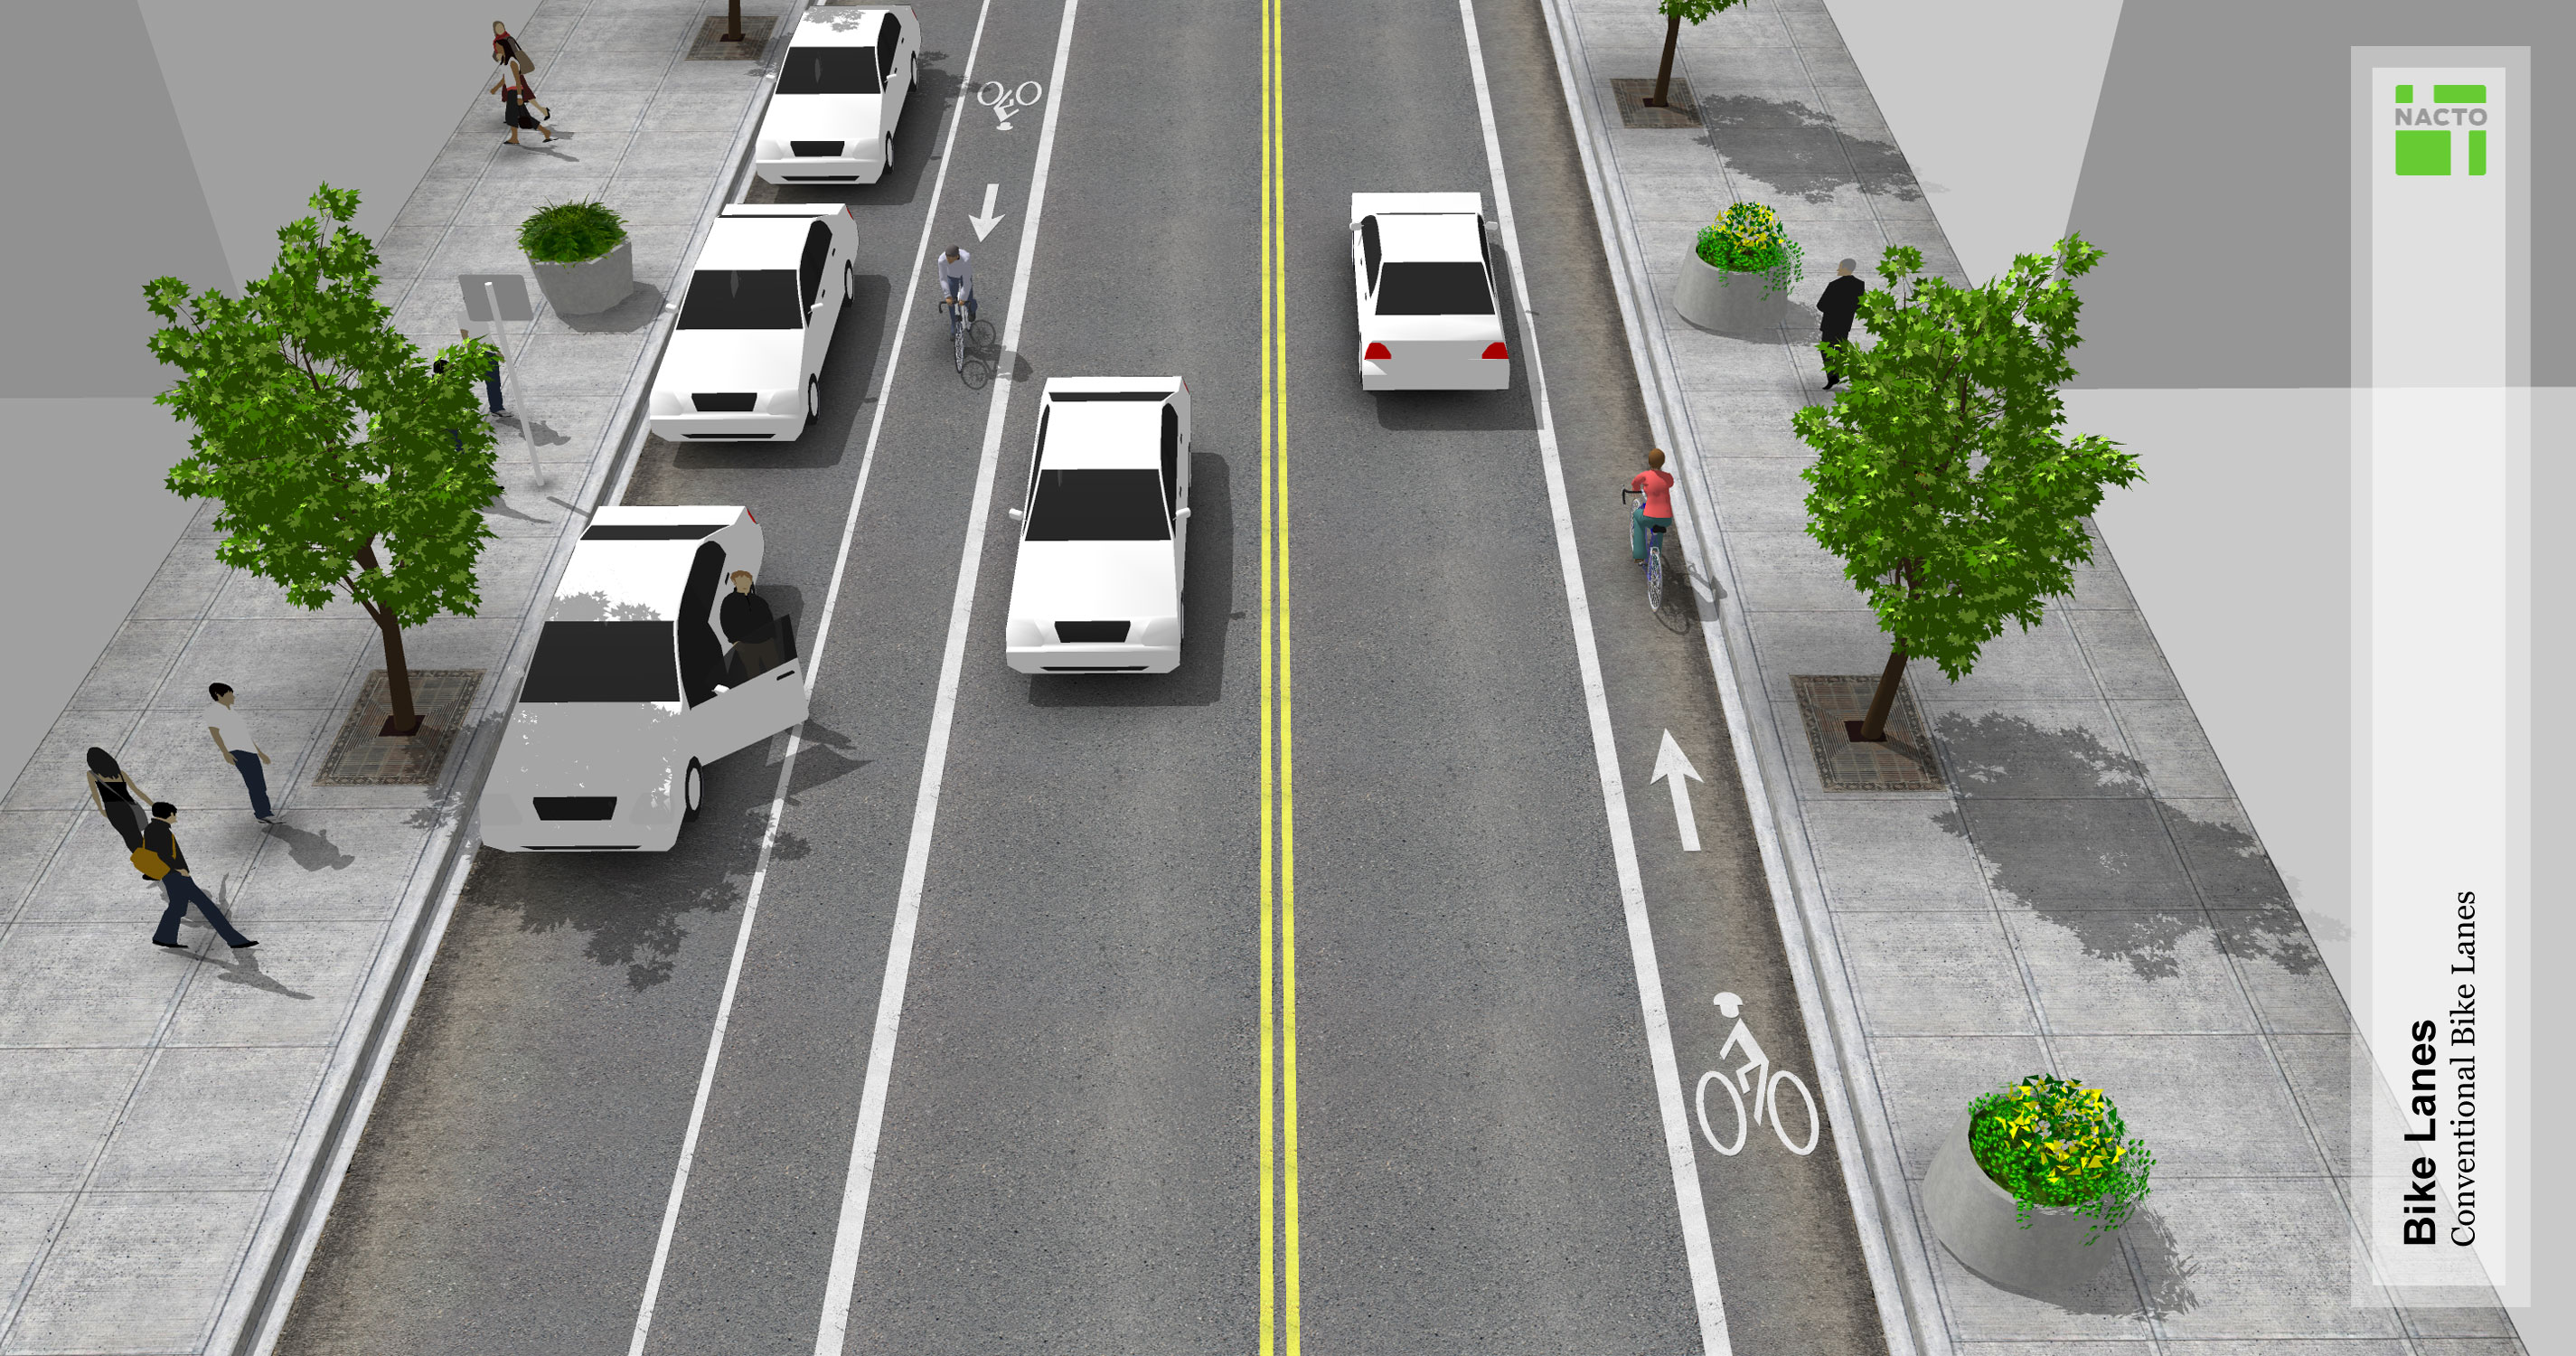 Conventional Bike Lanes | National Association of City